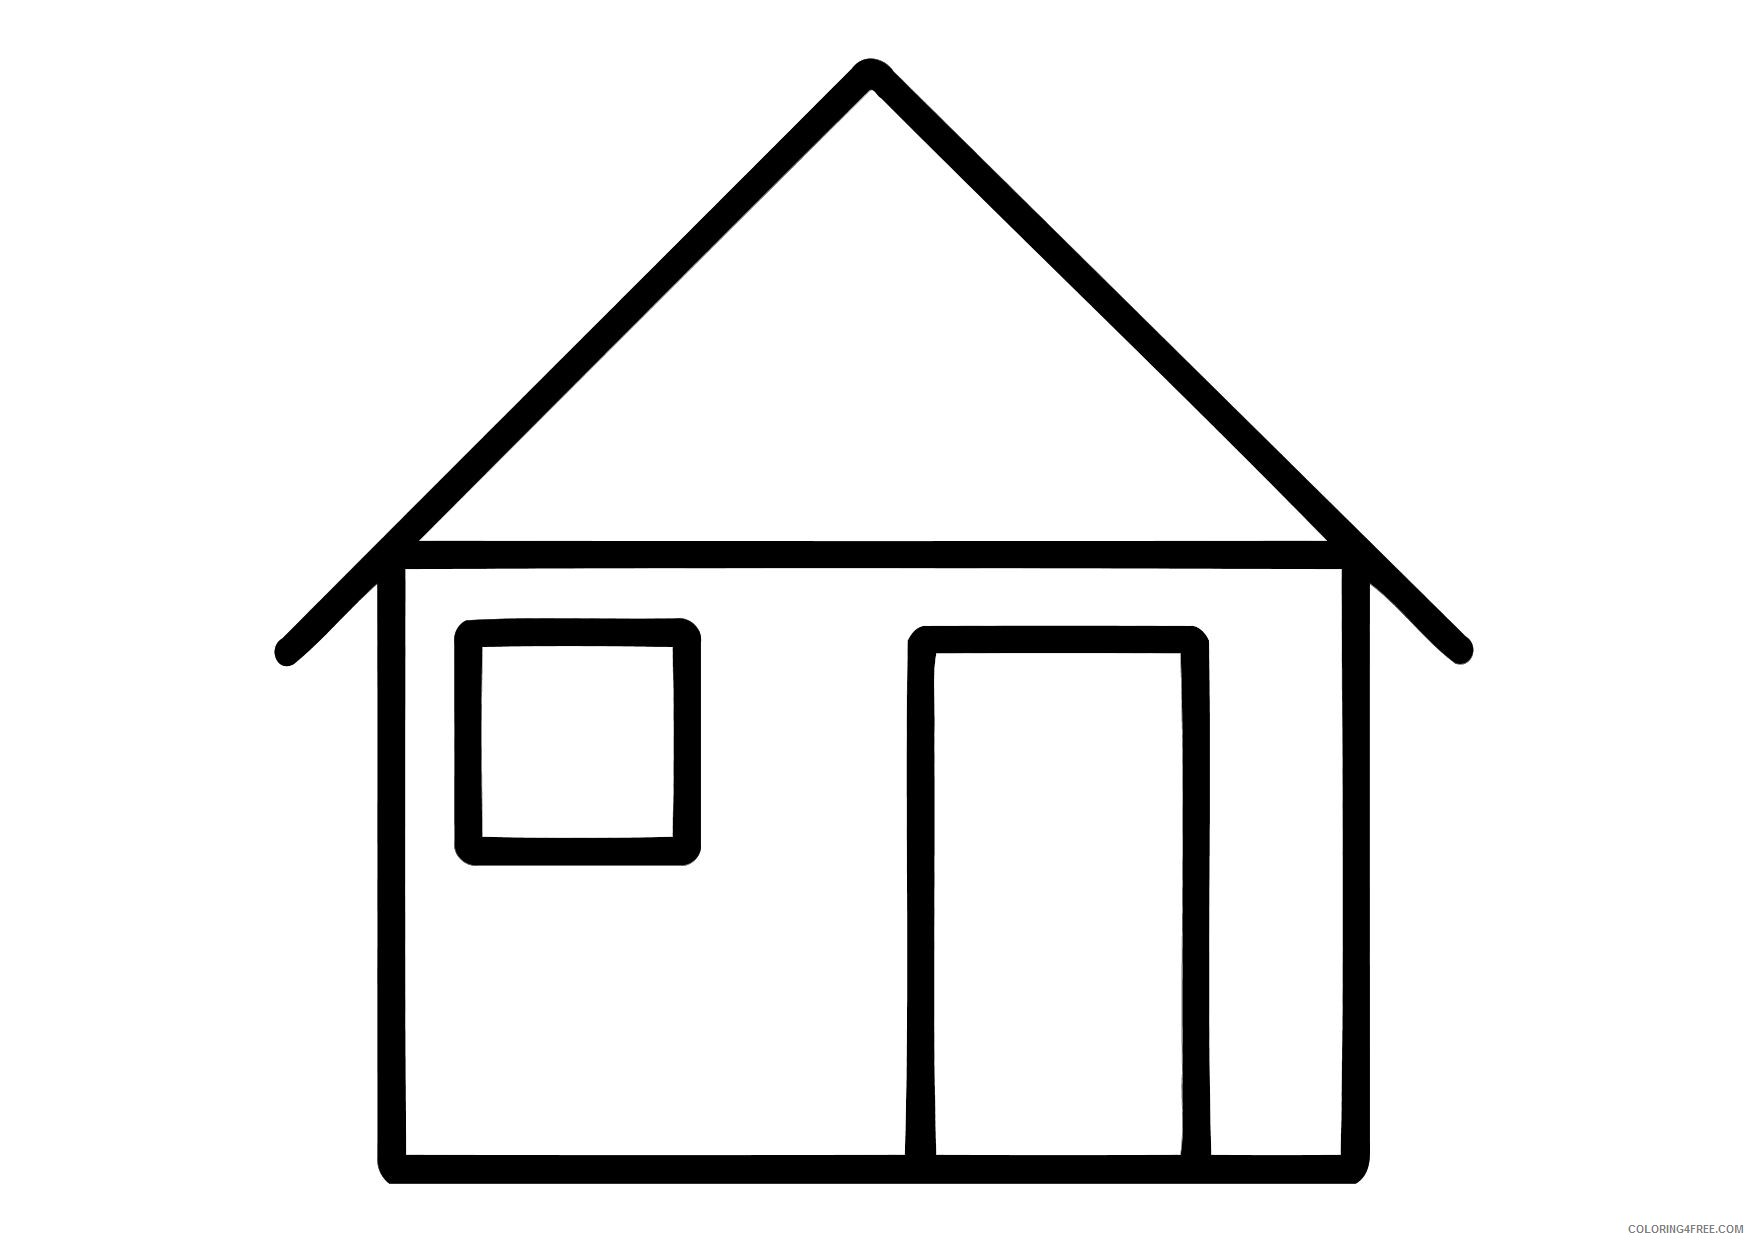 house coloring pages for preschoolers Coloring4free